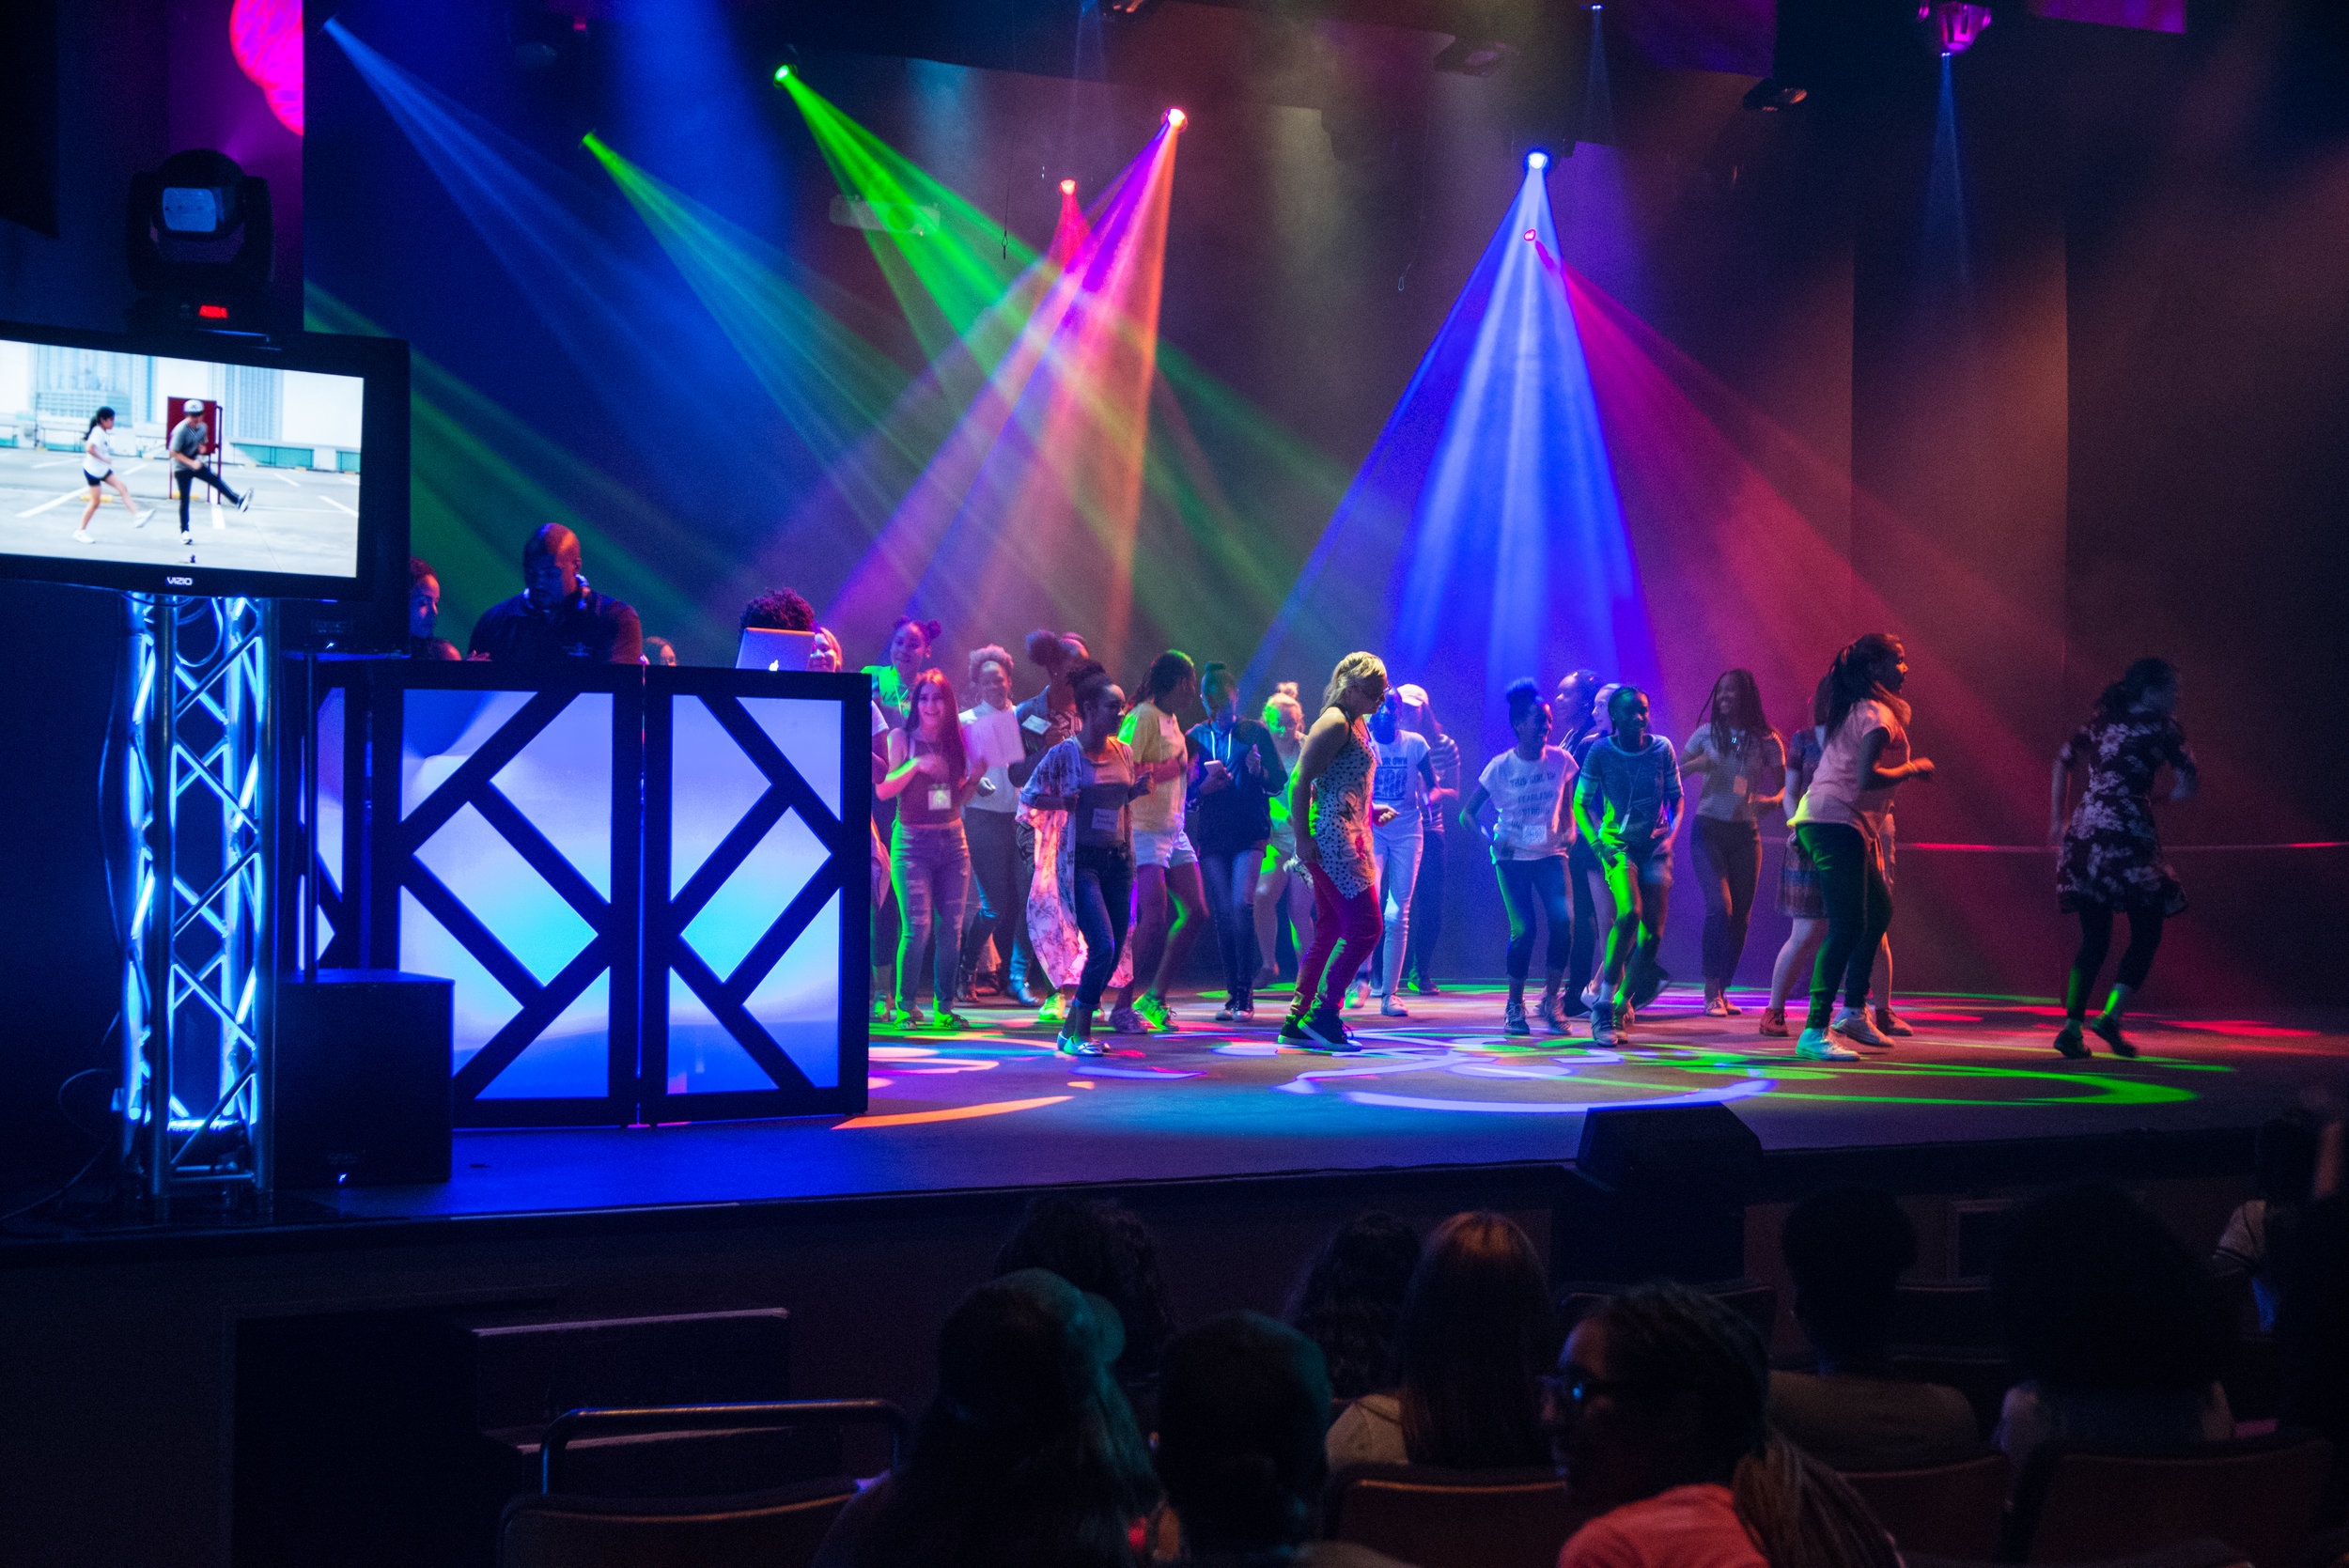 LIVE DJ! - DJ C Reelz and Chaffey College are preparing an epic experience filled with cool lights, smoke machines, lasers and more!